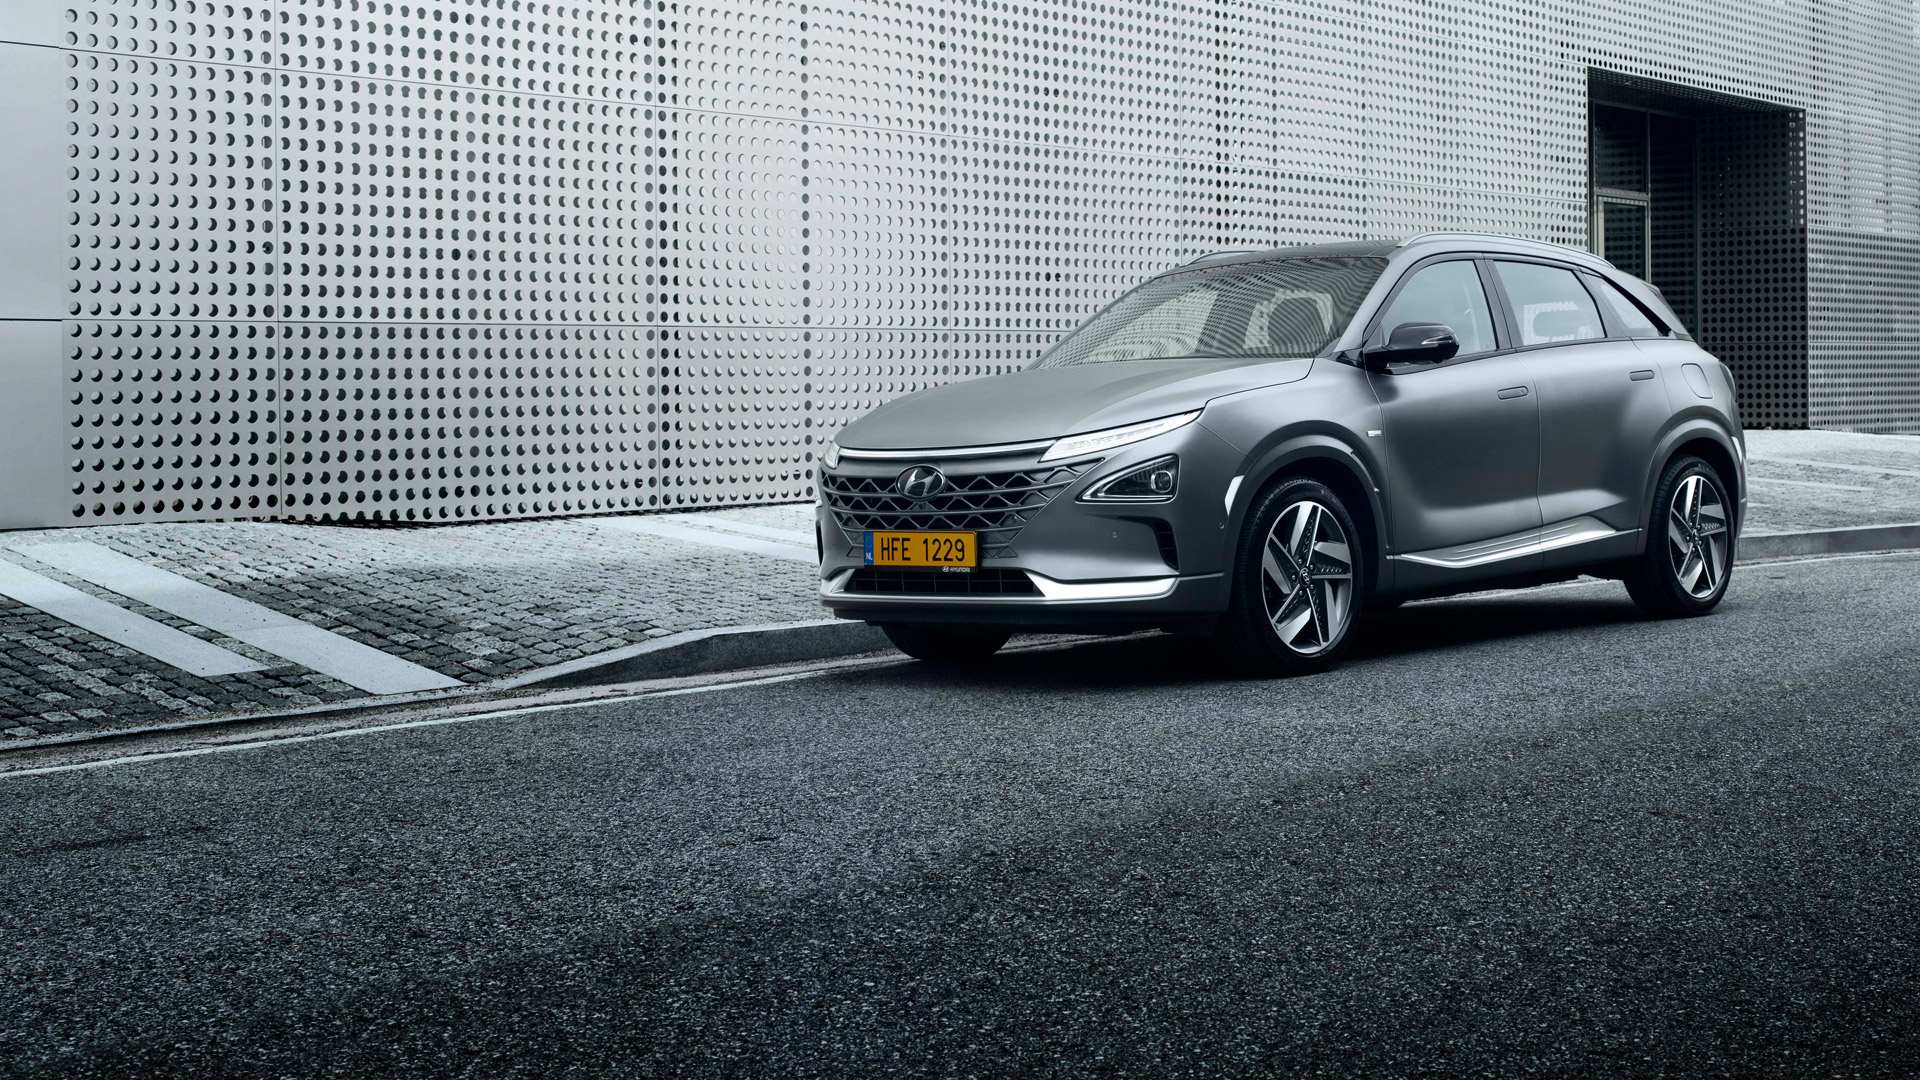 Ahead of the Curve | Channel Hyundai